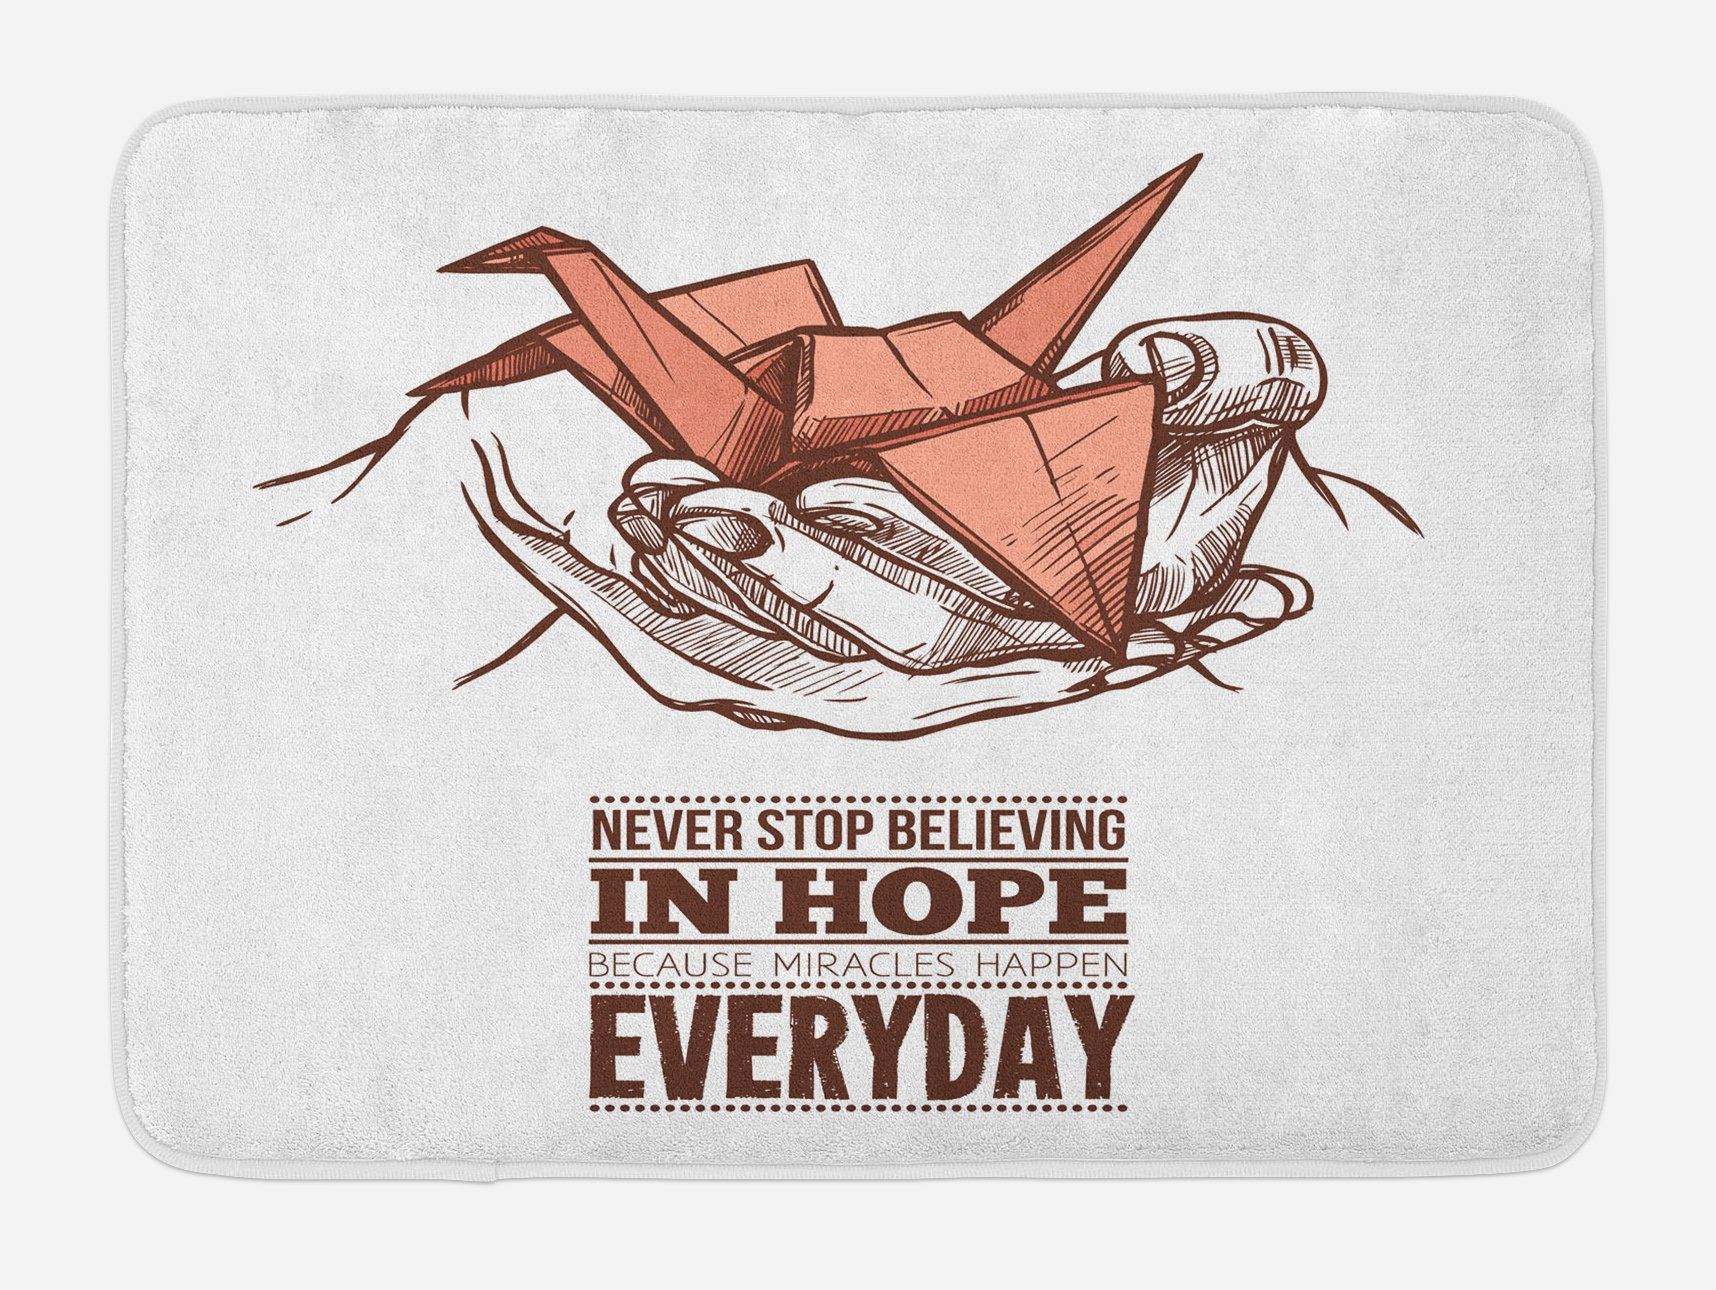 Ambesonne Hope Bath Mat, Hands Holding an Origami Crane with a Miracles Happen Everyday Quote, Plush Bathroom Decor Mat with Non Slip Backing, 29.5 W X 17.5 W Inches, Pale Orange Brown White